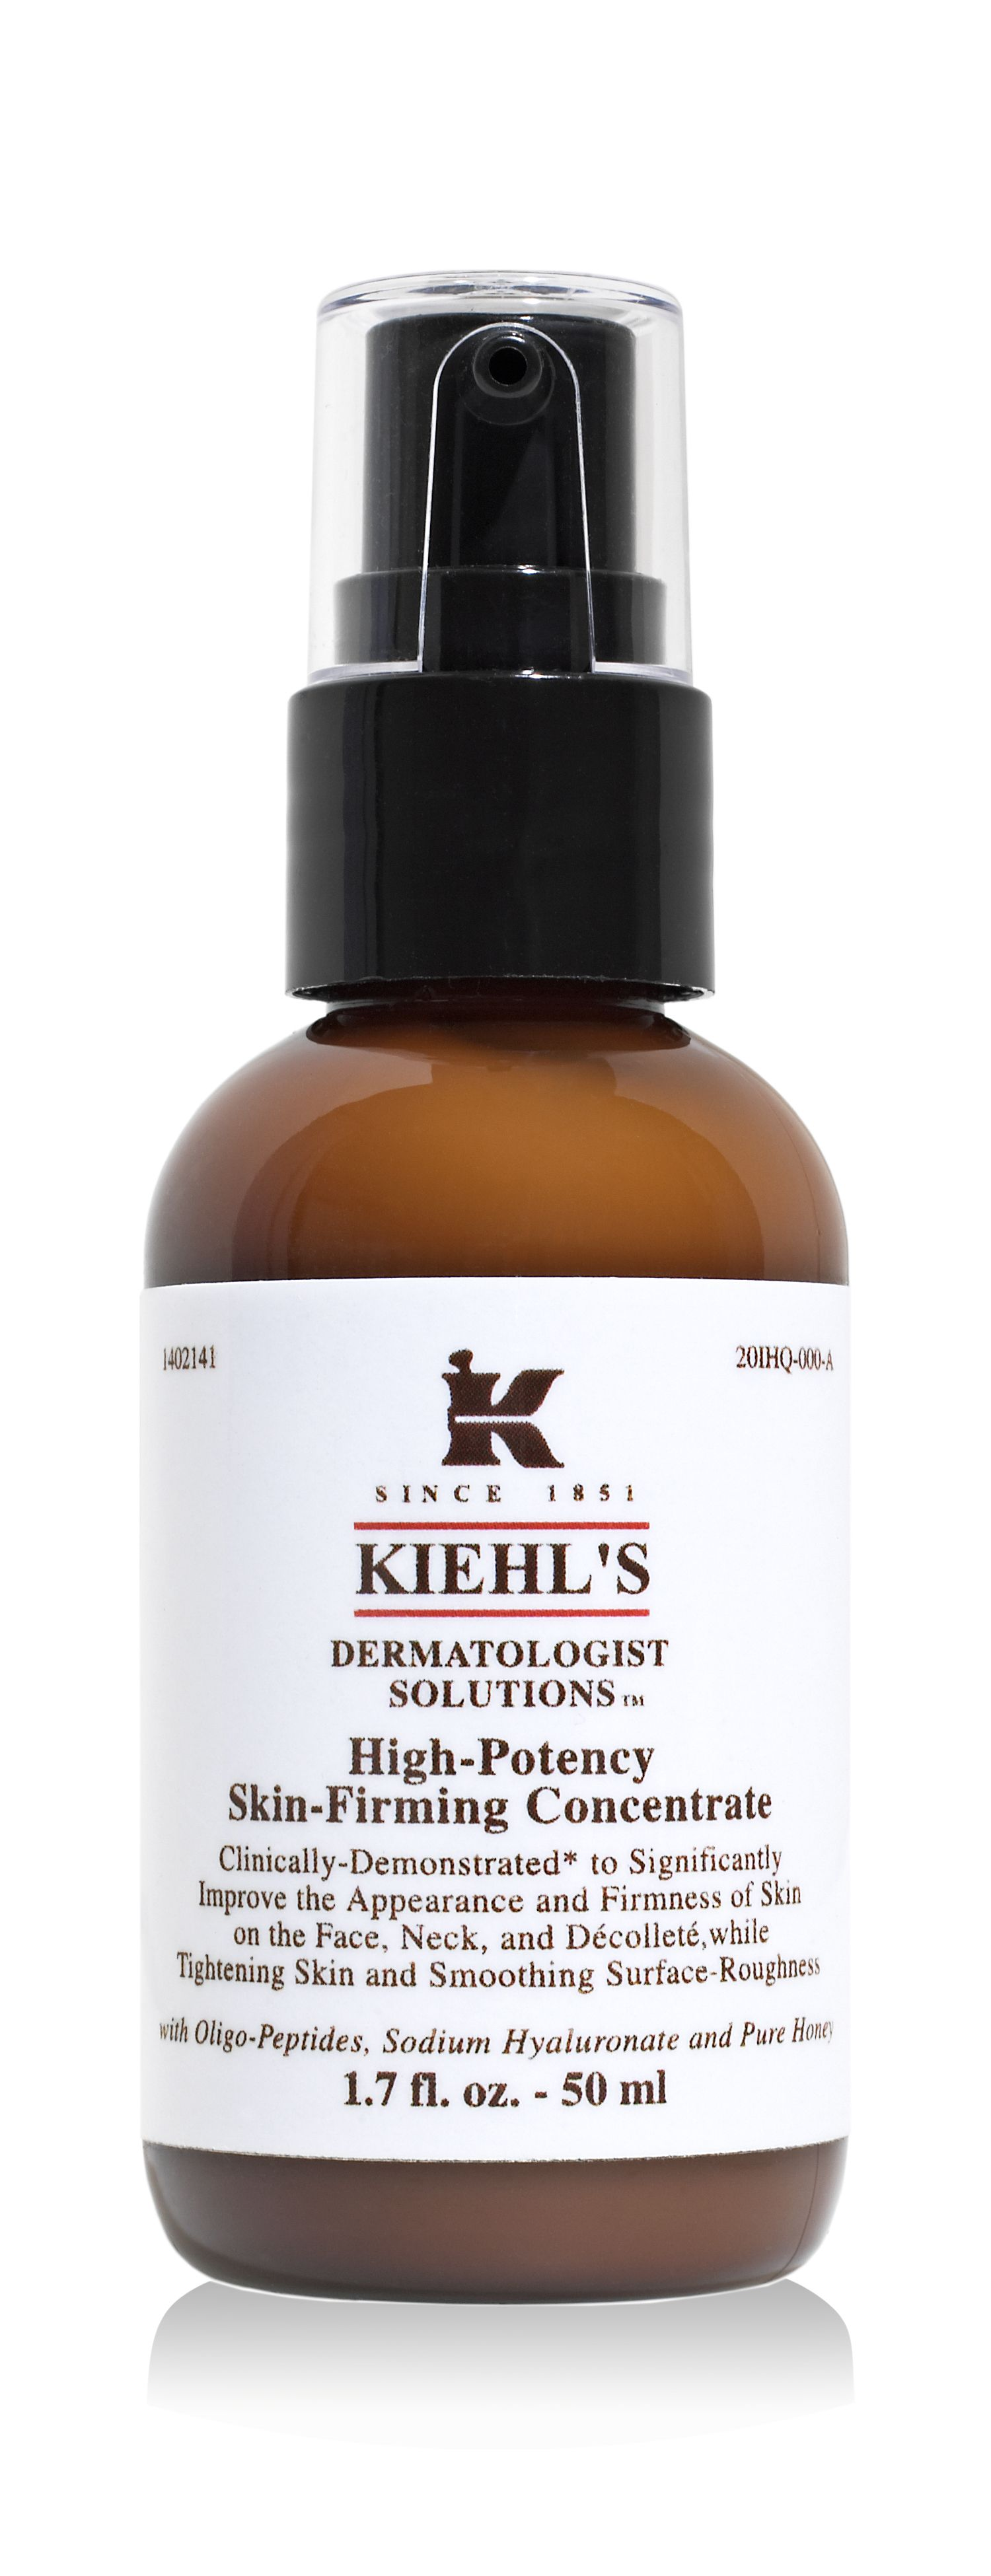 High-Potency Skin-Firming Concentrate, 50ml.